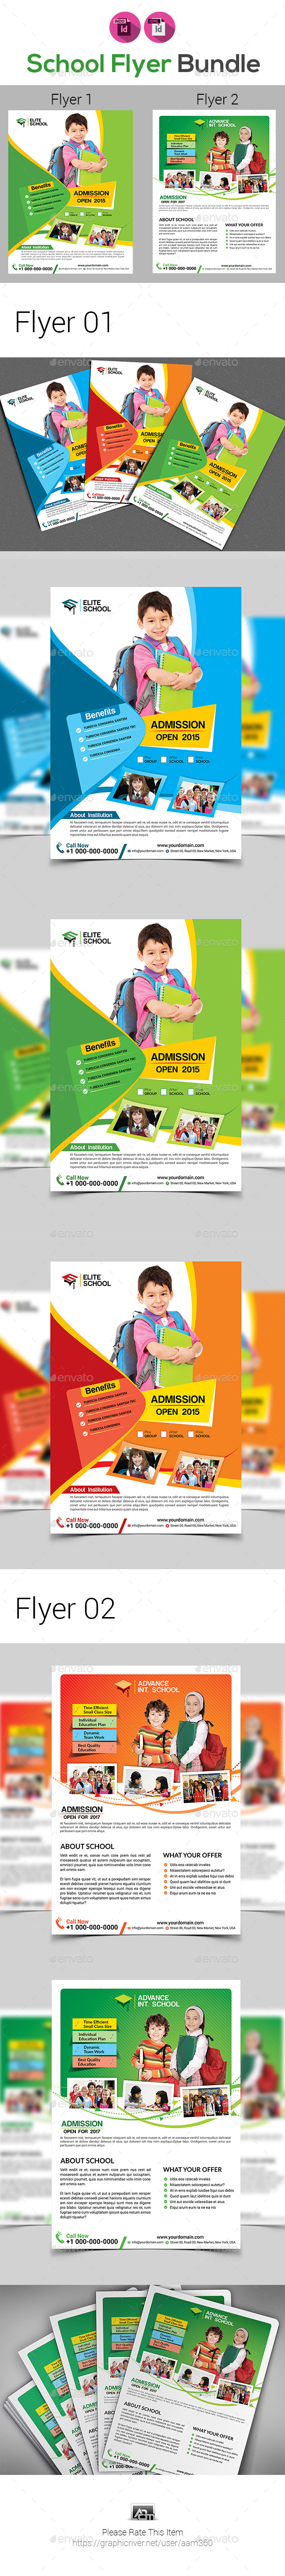 Kids School Flyer Bundle - Flyers Print Templates